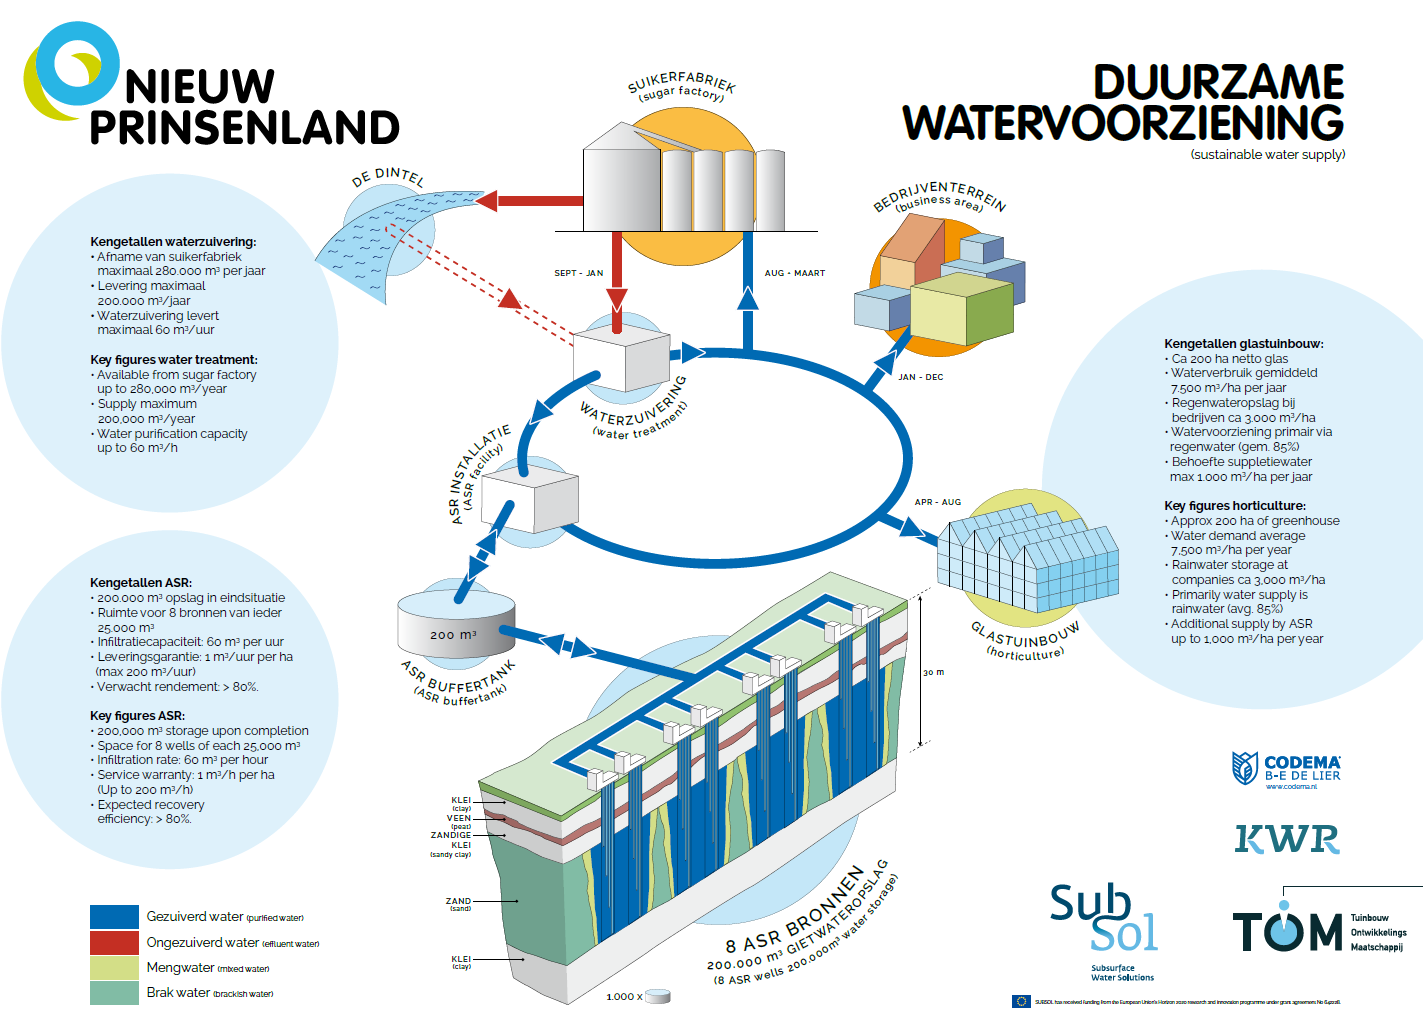 Overview of the system of the water supply of Nieuw Prinsenland